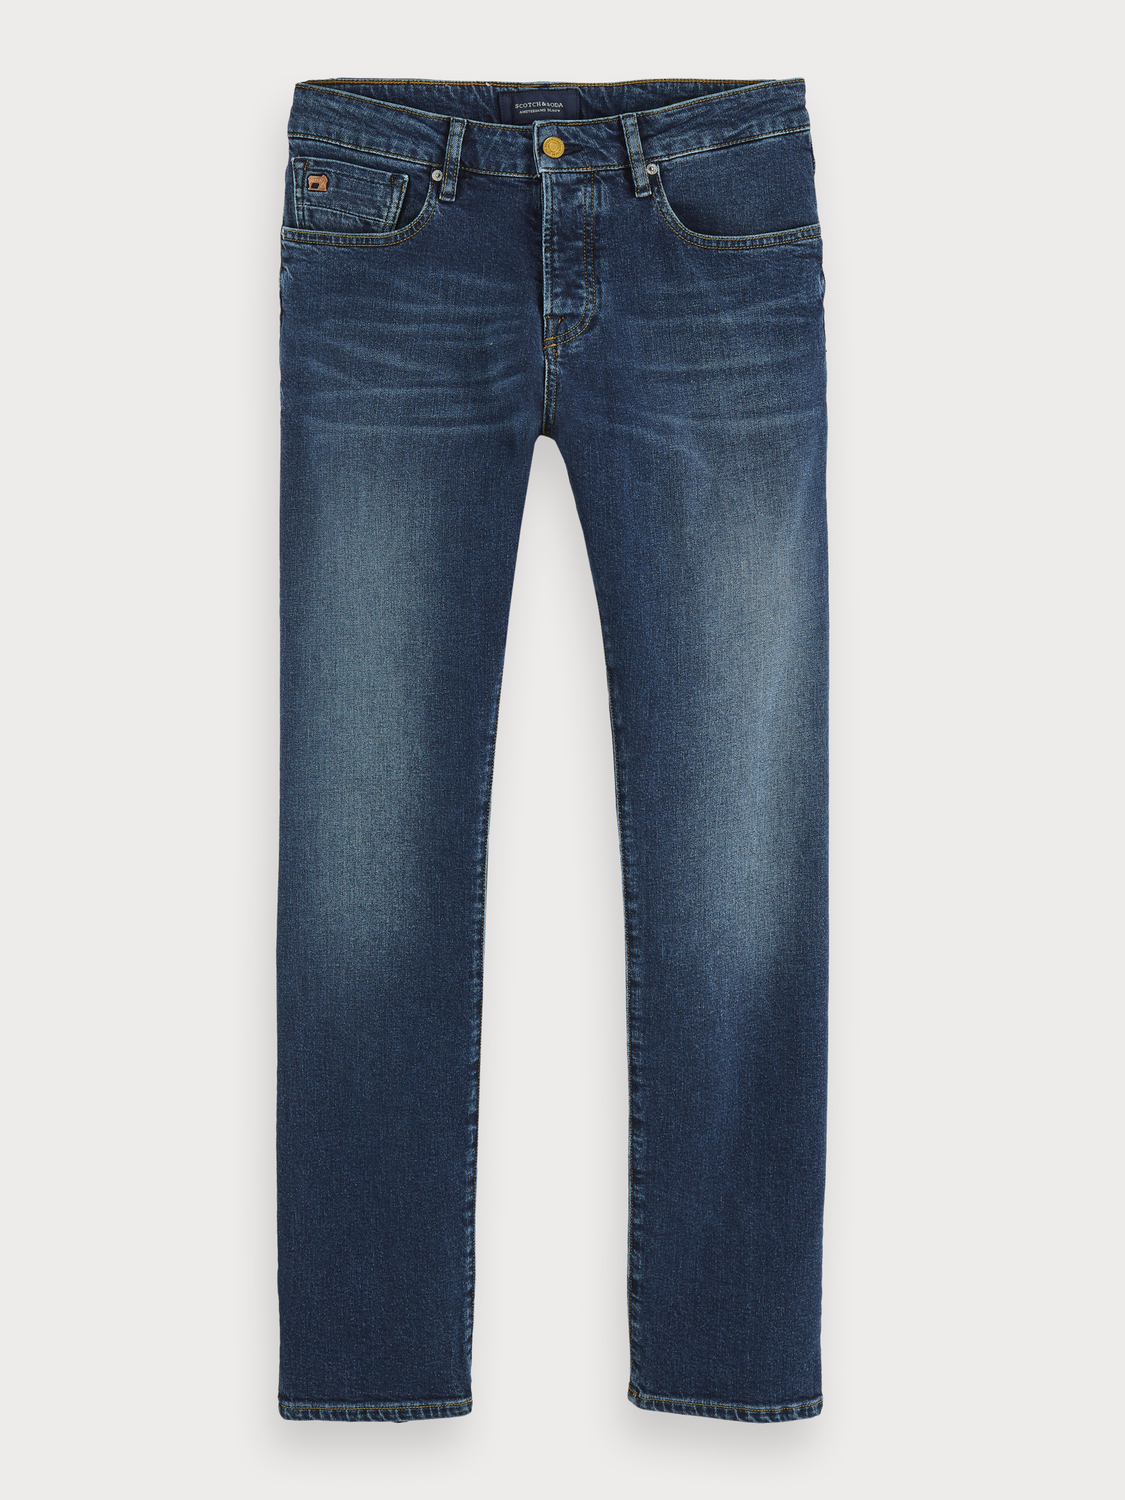 Herrar Vernon - Blauw Sunset | Regular straight fit